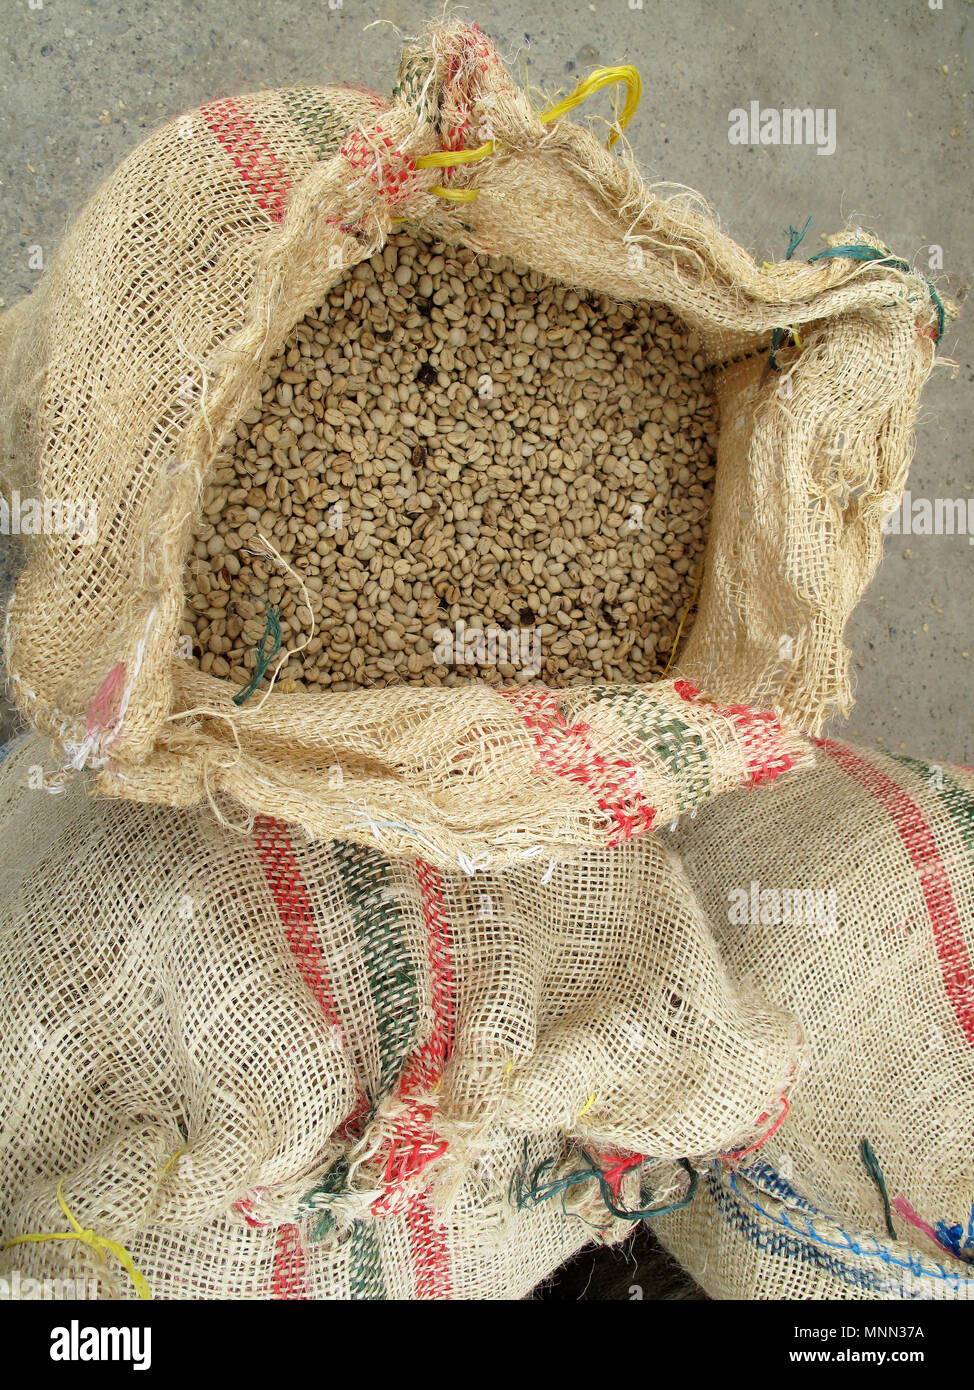 Not roasted coffee beans in jute sack top view, Colombia - Stock Image